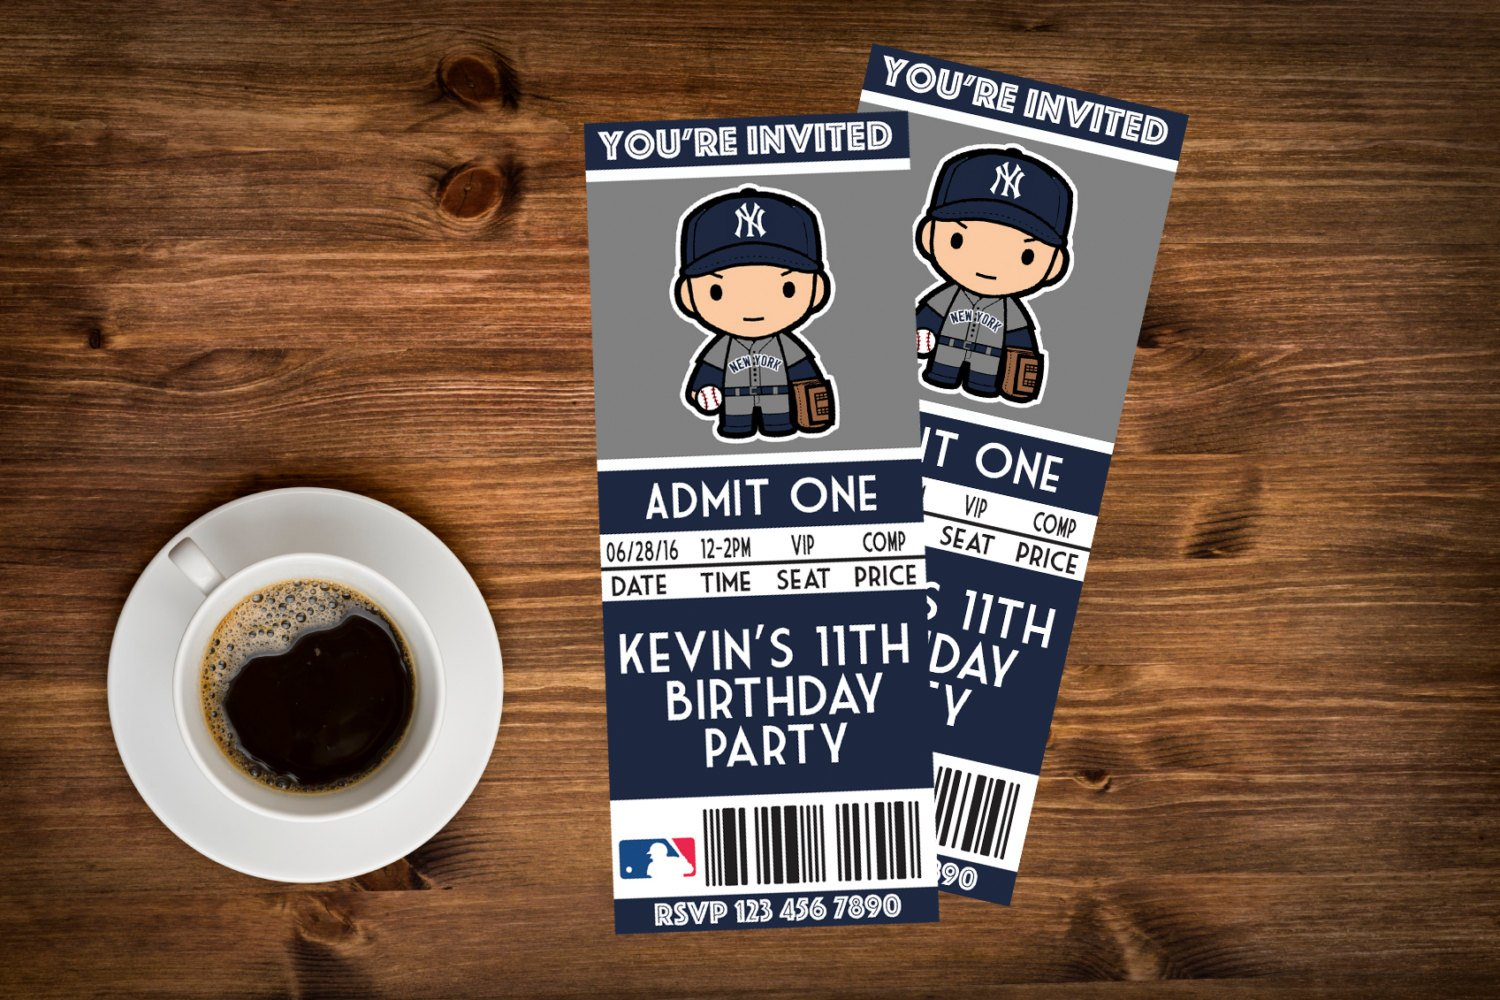 yankees birthday invitation ticket example